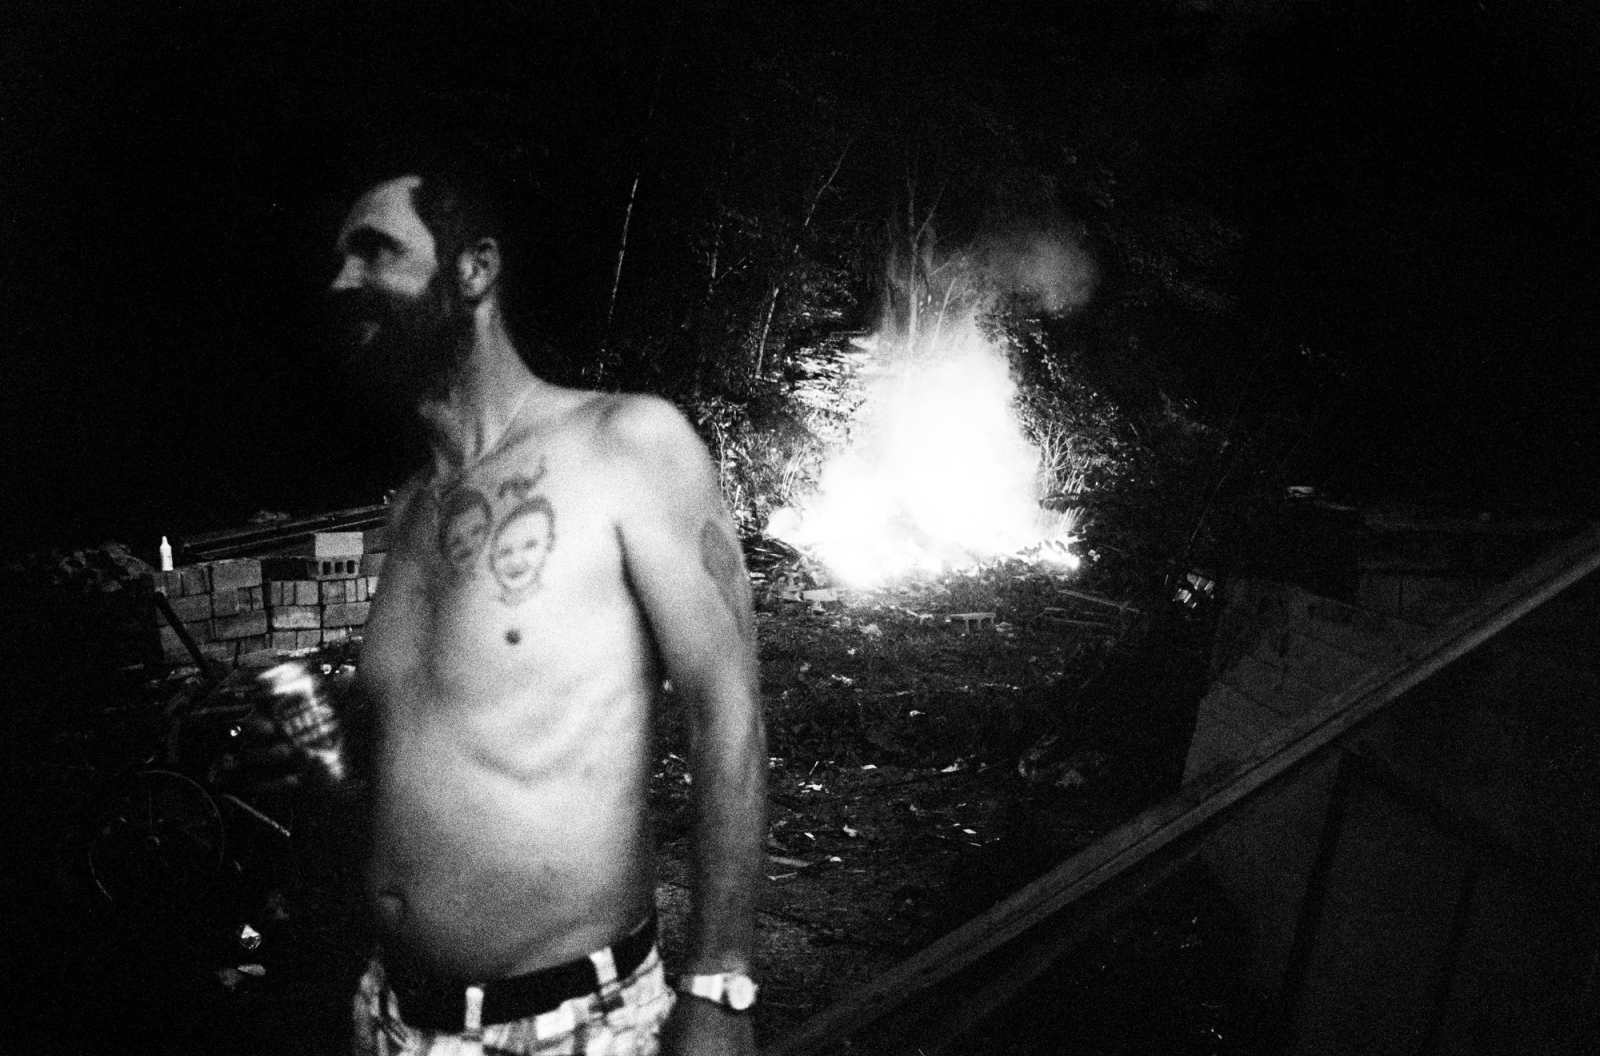 Ink to remember, fire and water to forget, West Virginia coal country.